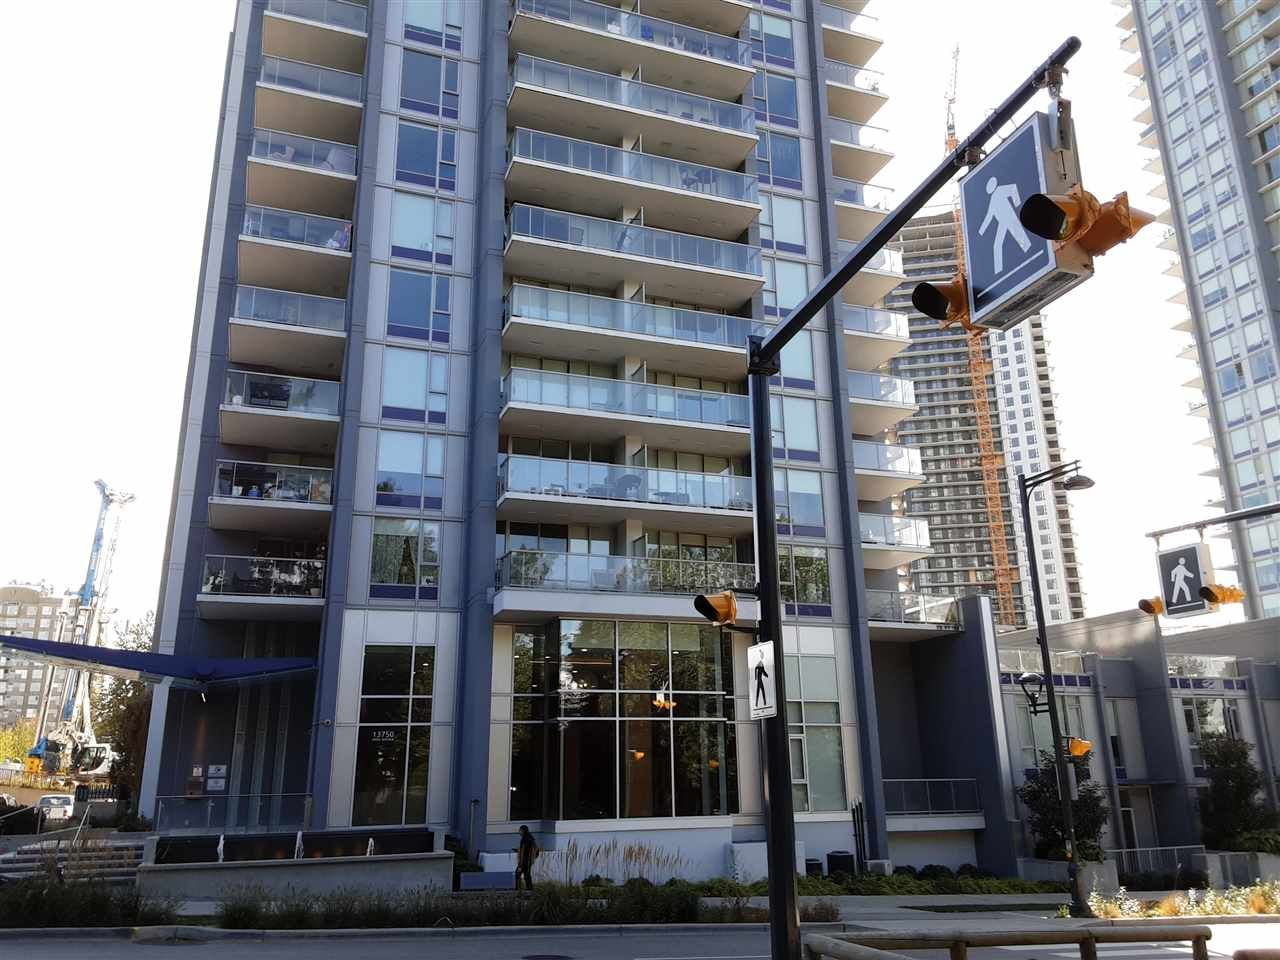 """Main Photo: 4015 13750 100 Avenue in Surrey: Whalley Condo for sale in """"Park Ave East"""" (North Surrey)  : MLS®# R2500352"""